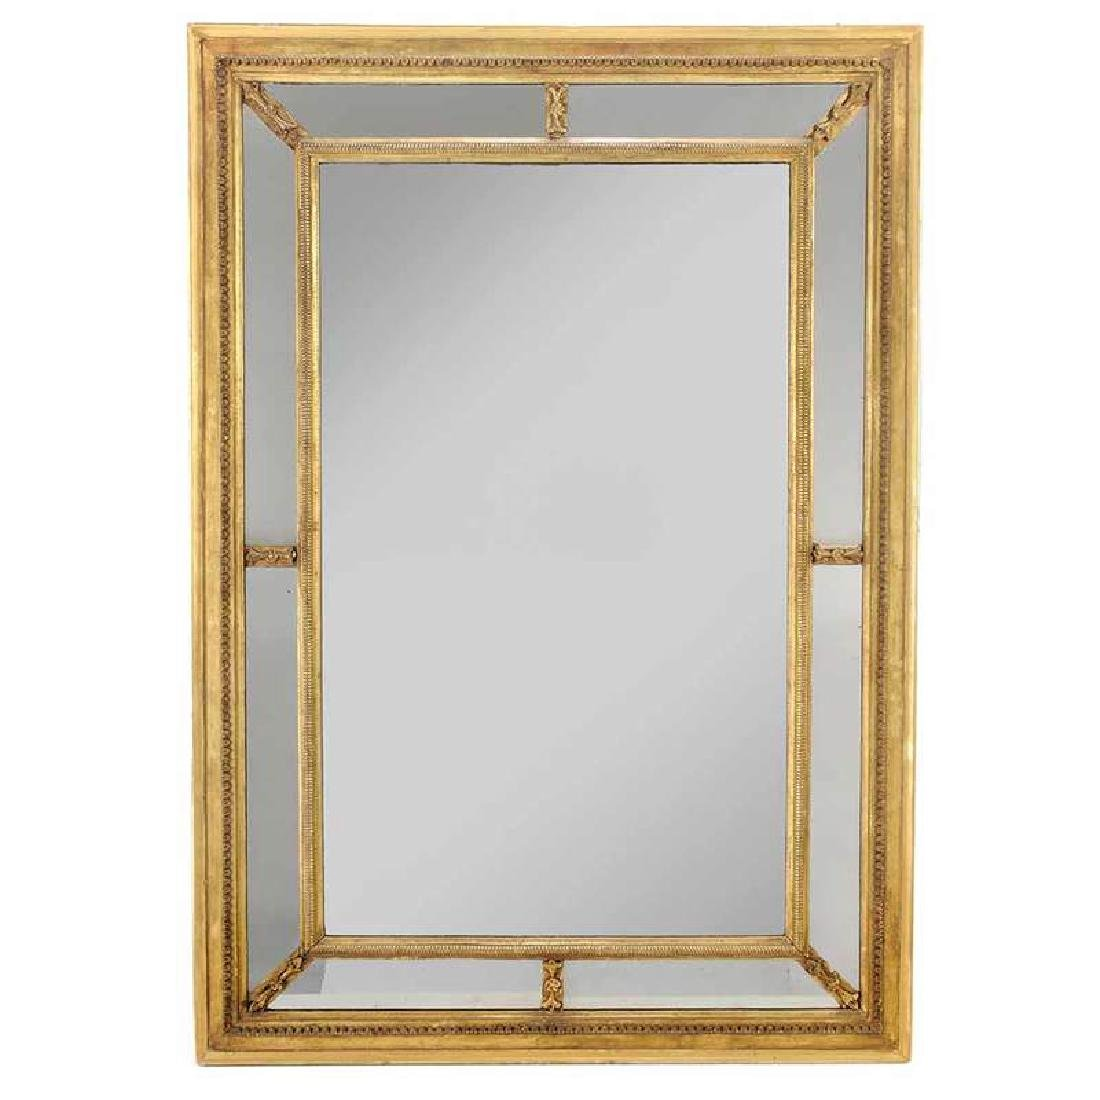 George III Style Carved Giltwood Framed Mirror